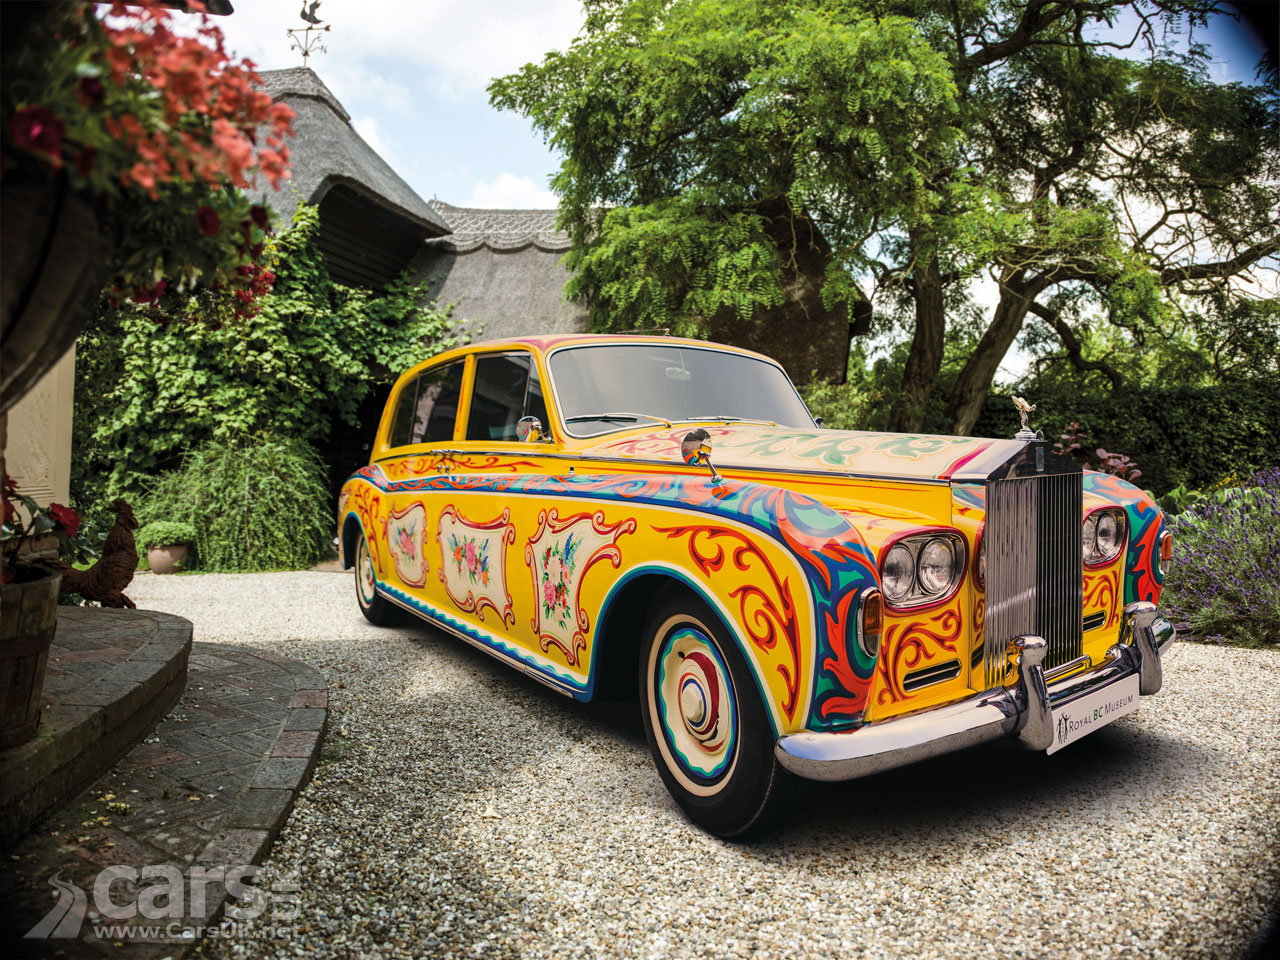 John Lennon's Rolls Royce Phantom V (pictured) is one of the 'Great Eight Phantoms'